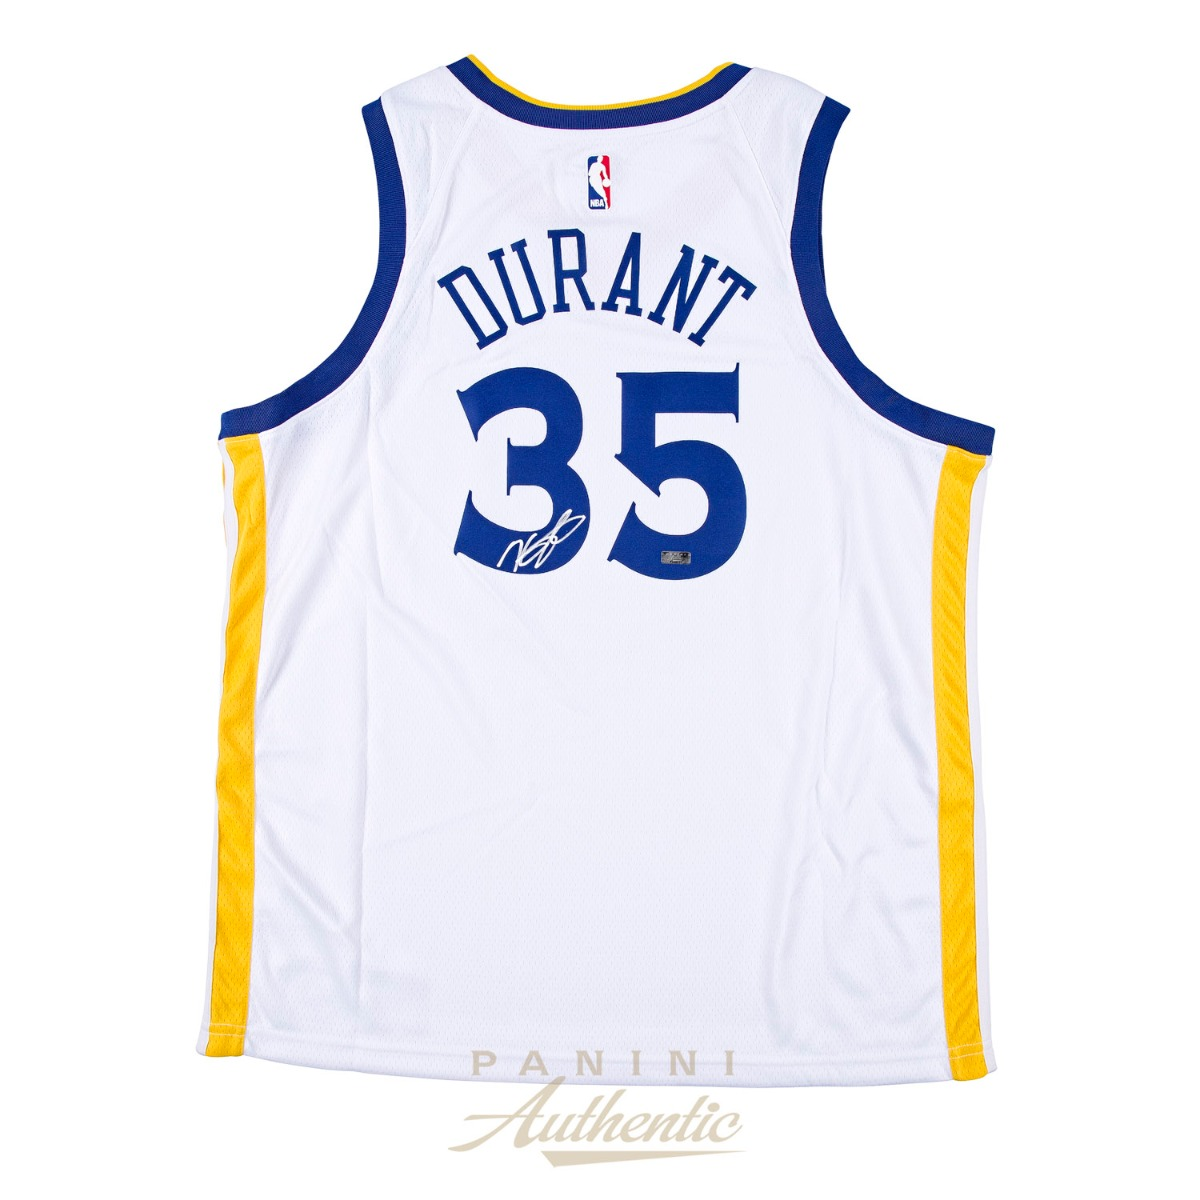 competitive price 3378e 9a0e4 Kevin Durant Autographed Nike White Golden State Warriors ...